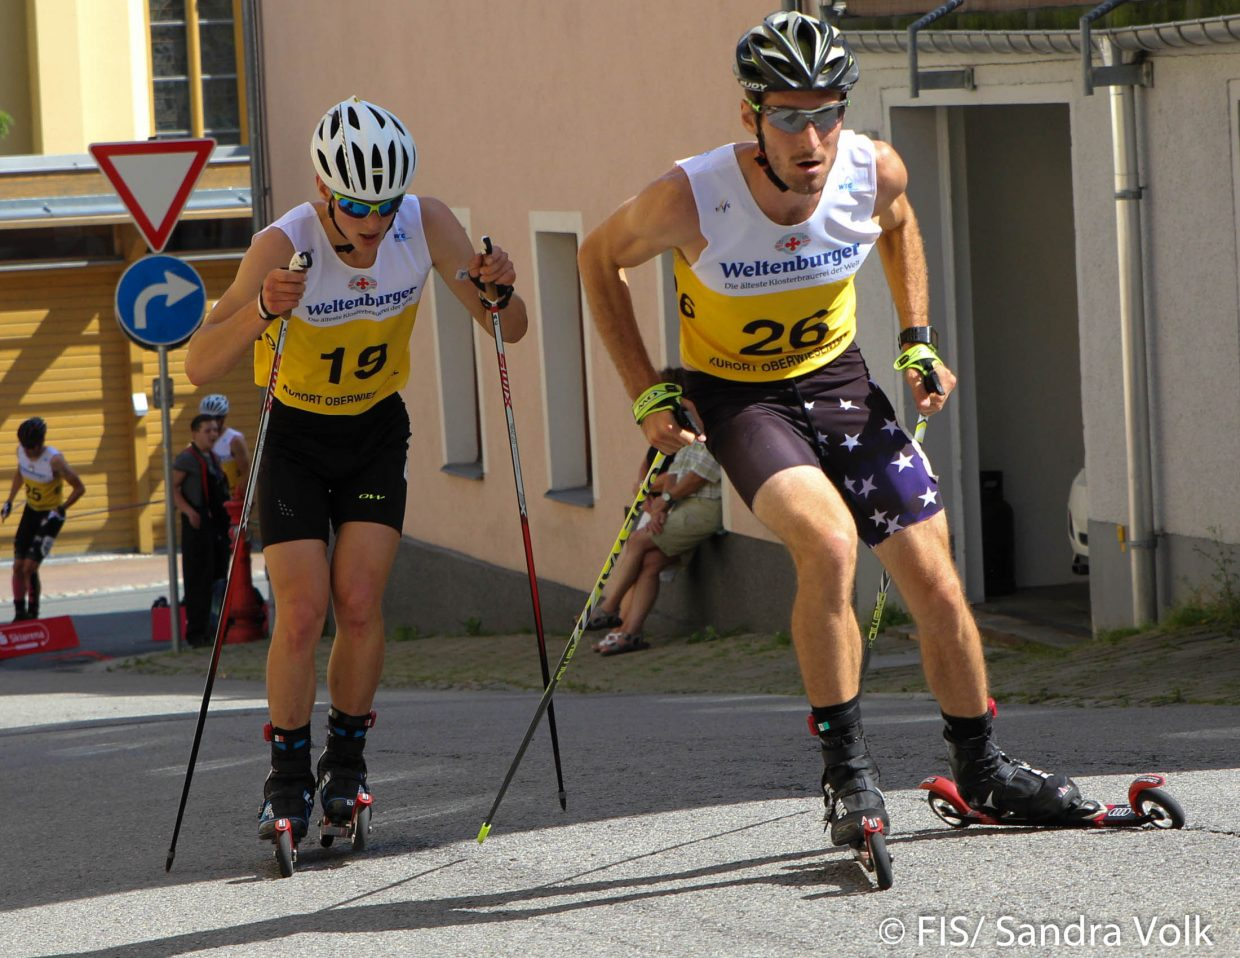 Taylor Fletcher, of Steamboat Springs and the U.S. Nordic Combined team, foreground, posted the fasted raw time in the roller ski phase of a summer Grand Prix event in Oberwiesenthal, Germany, on Aug. 28, leading to an overall seventh-place finish based on his time penalty after the ski jumping competition.